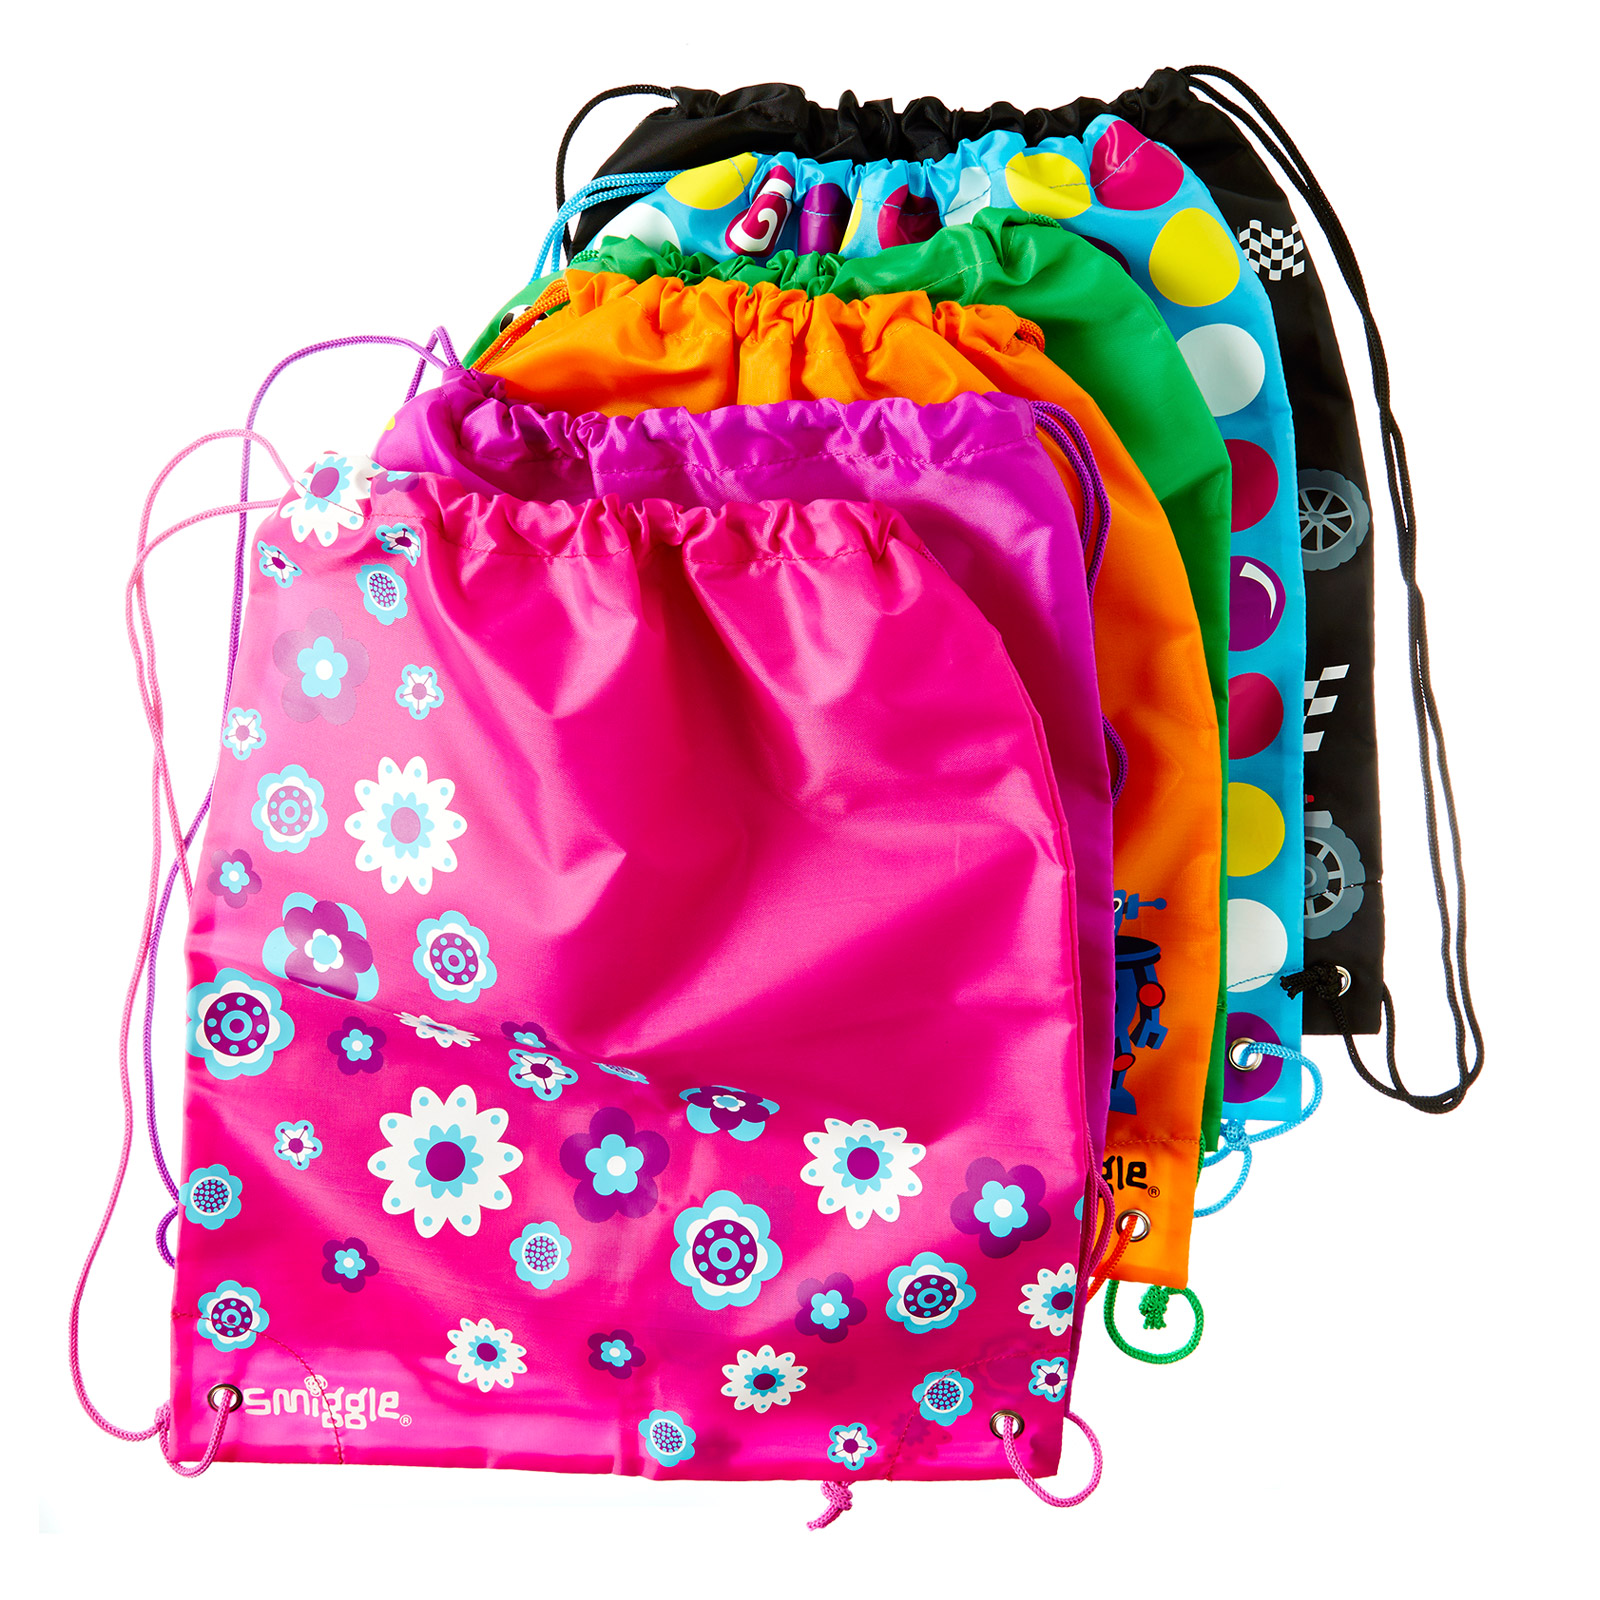 Smiggle bags for school - 442765_group_l